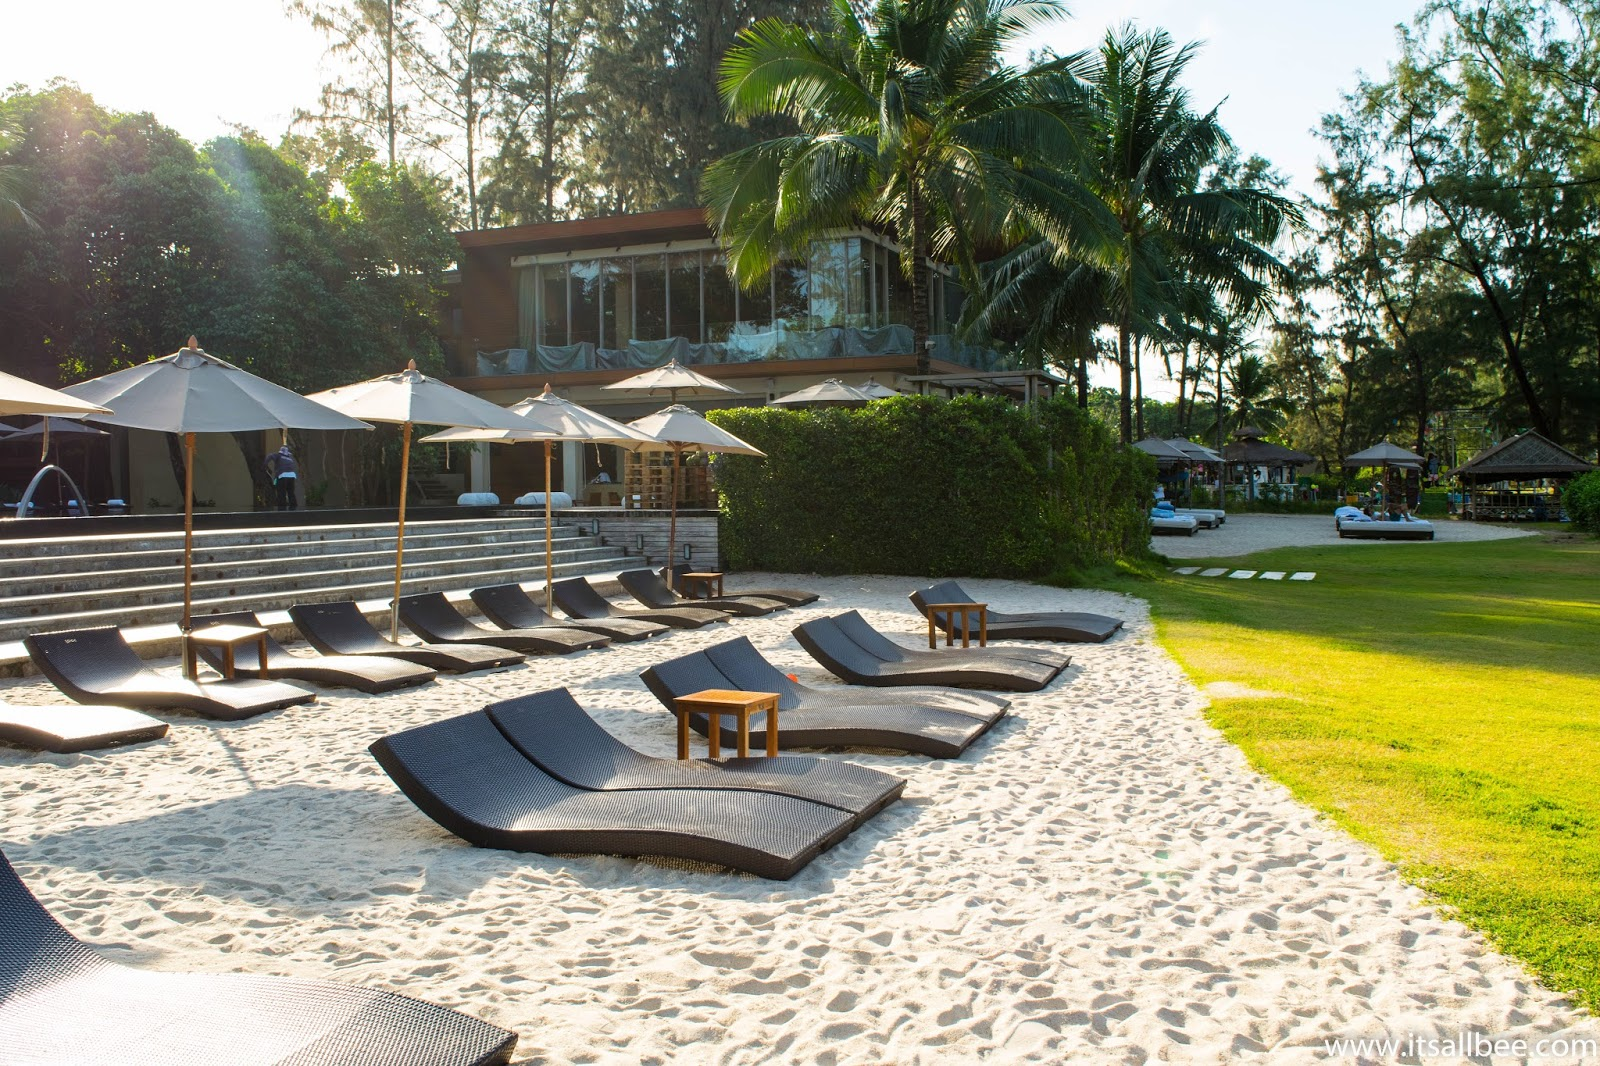 Luxury Beach Resorts in Phuket - Things to do in Phuket | 10 Experiences You Need To Have In Phuket